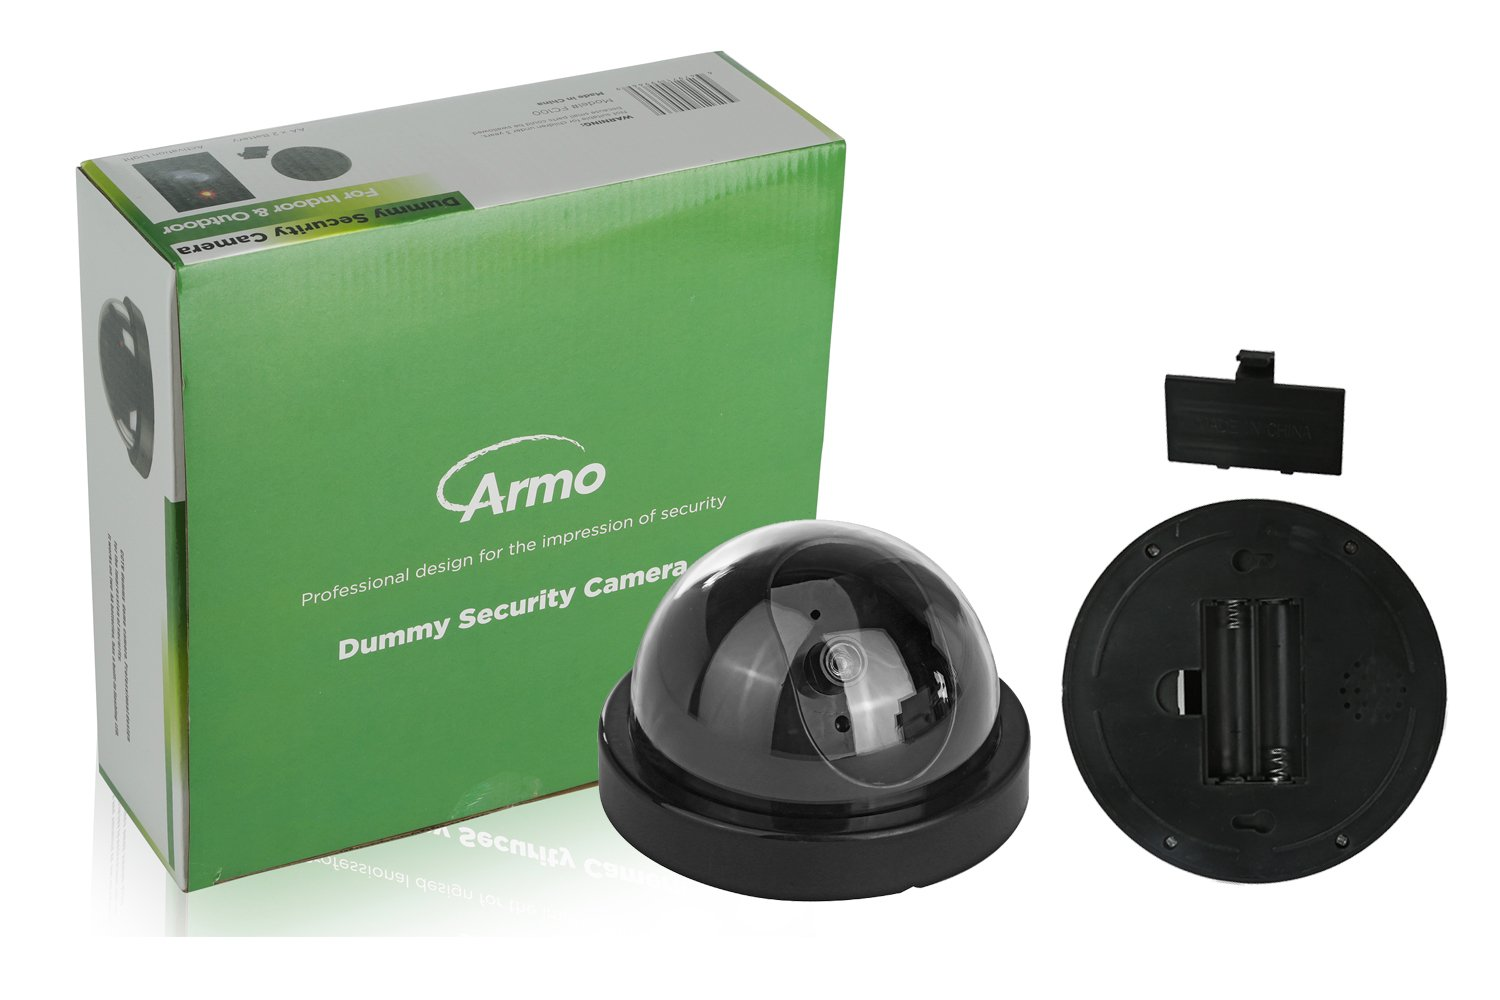 (4 Pack) Fake Dummy Security CCTV Dome Camera With Realistic Look Recording Flashing Red LED Light Indoor And Outdoor Use, For Homes & Business- By Armo by Armo (Image #3)